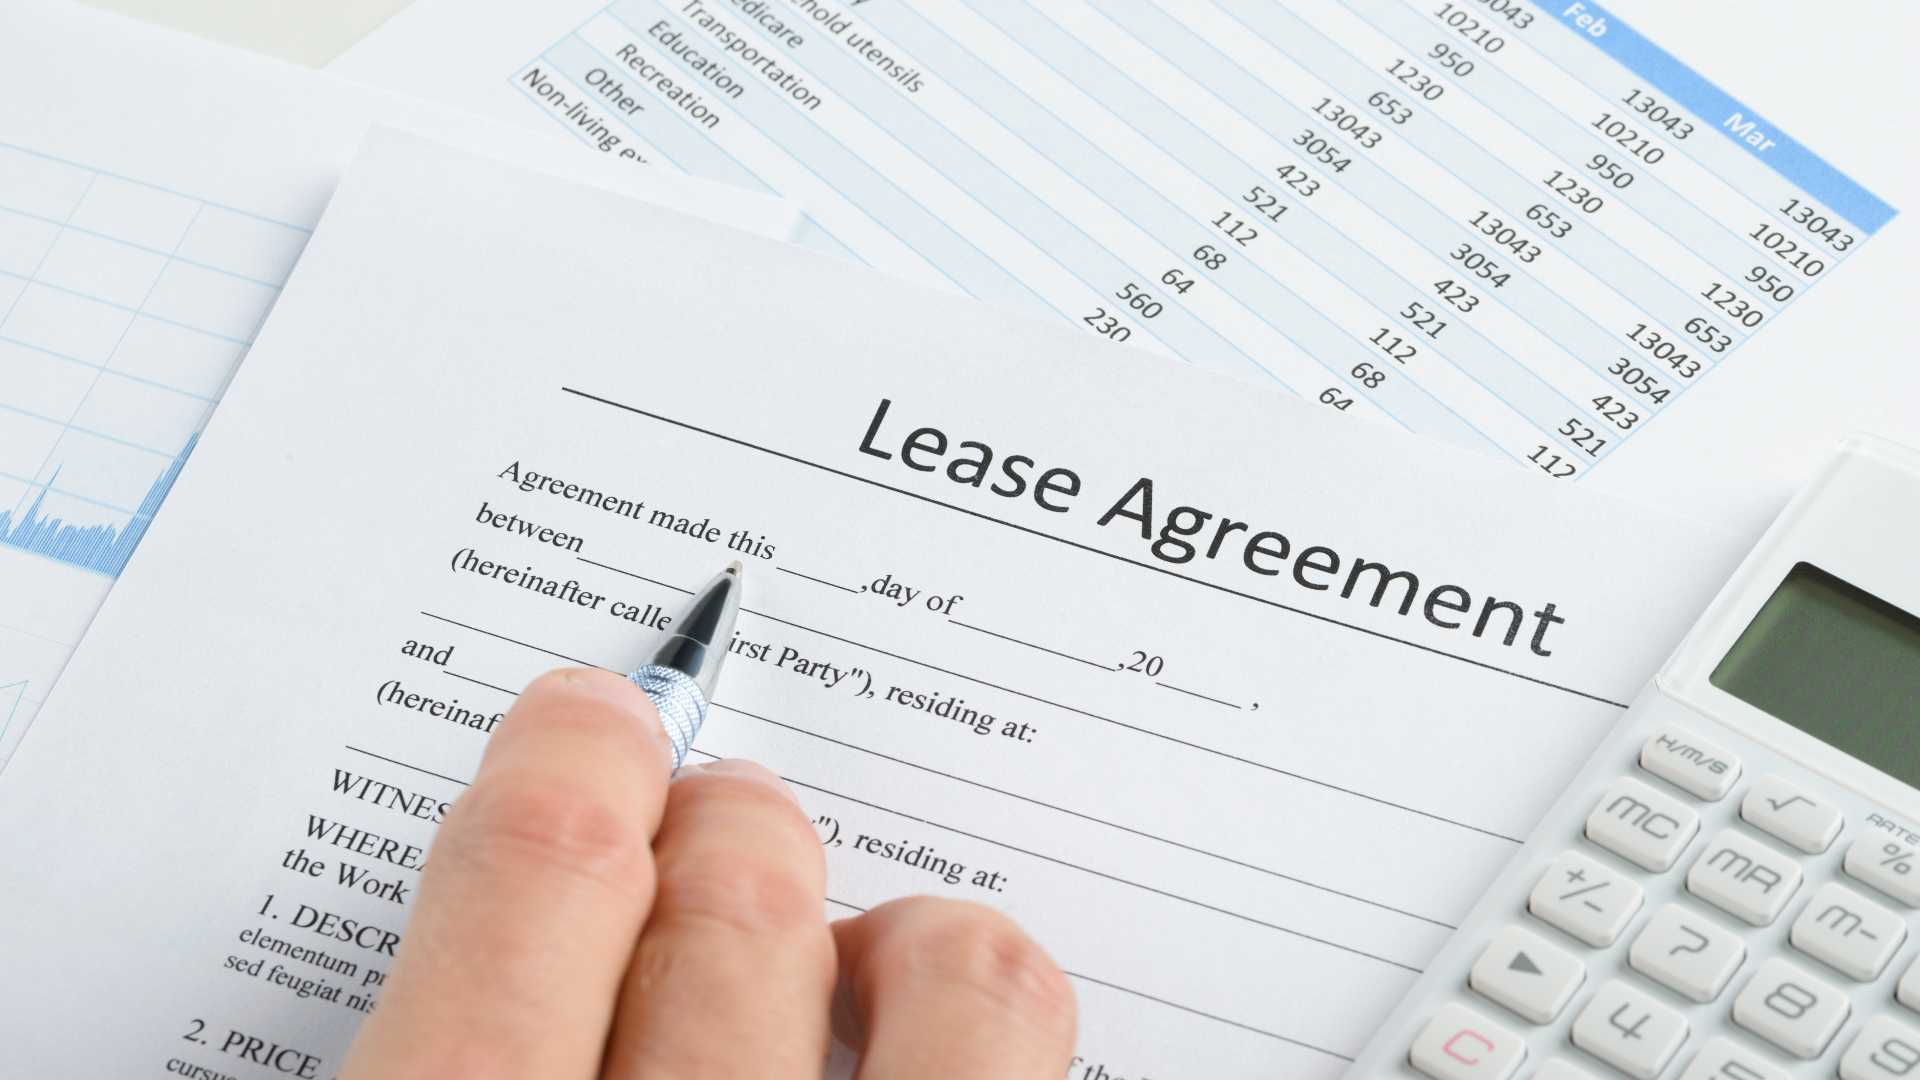 Filling out lease agreement with calculator and expenses